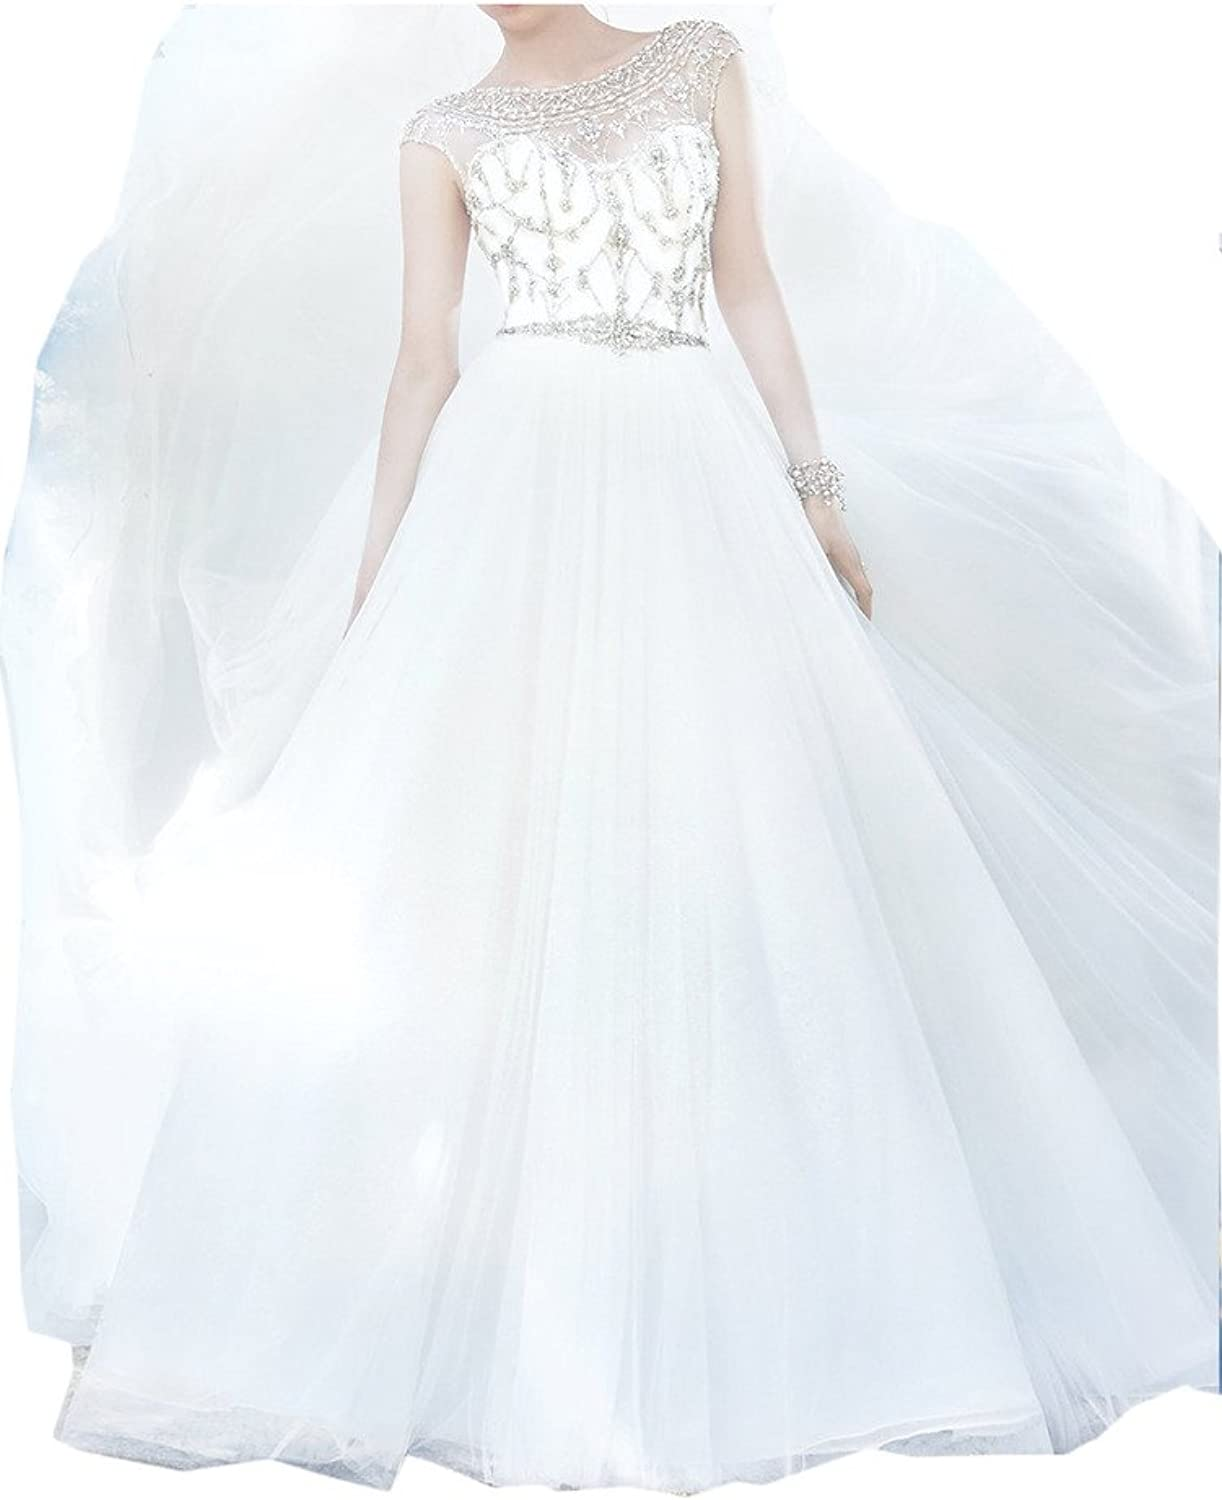 Avril Dress Tulle Beading Rhinestone Wedding Gown Backless With Chapel Train